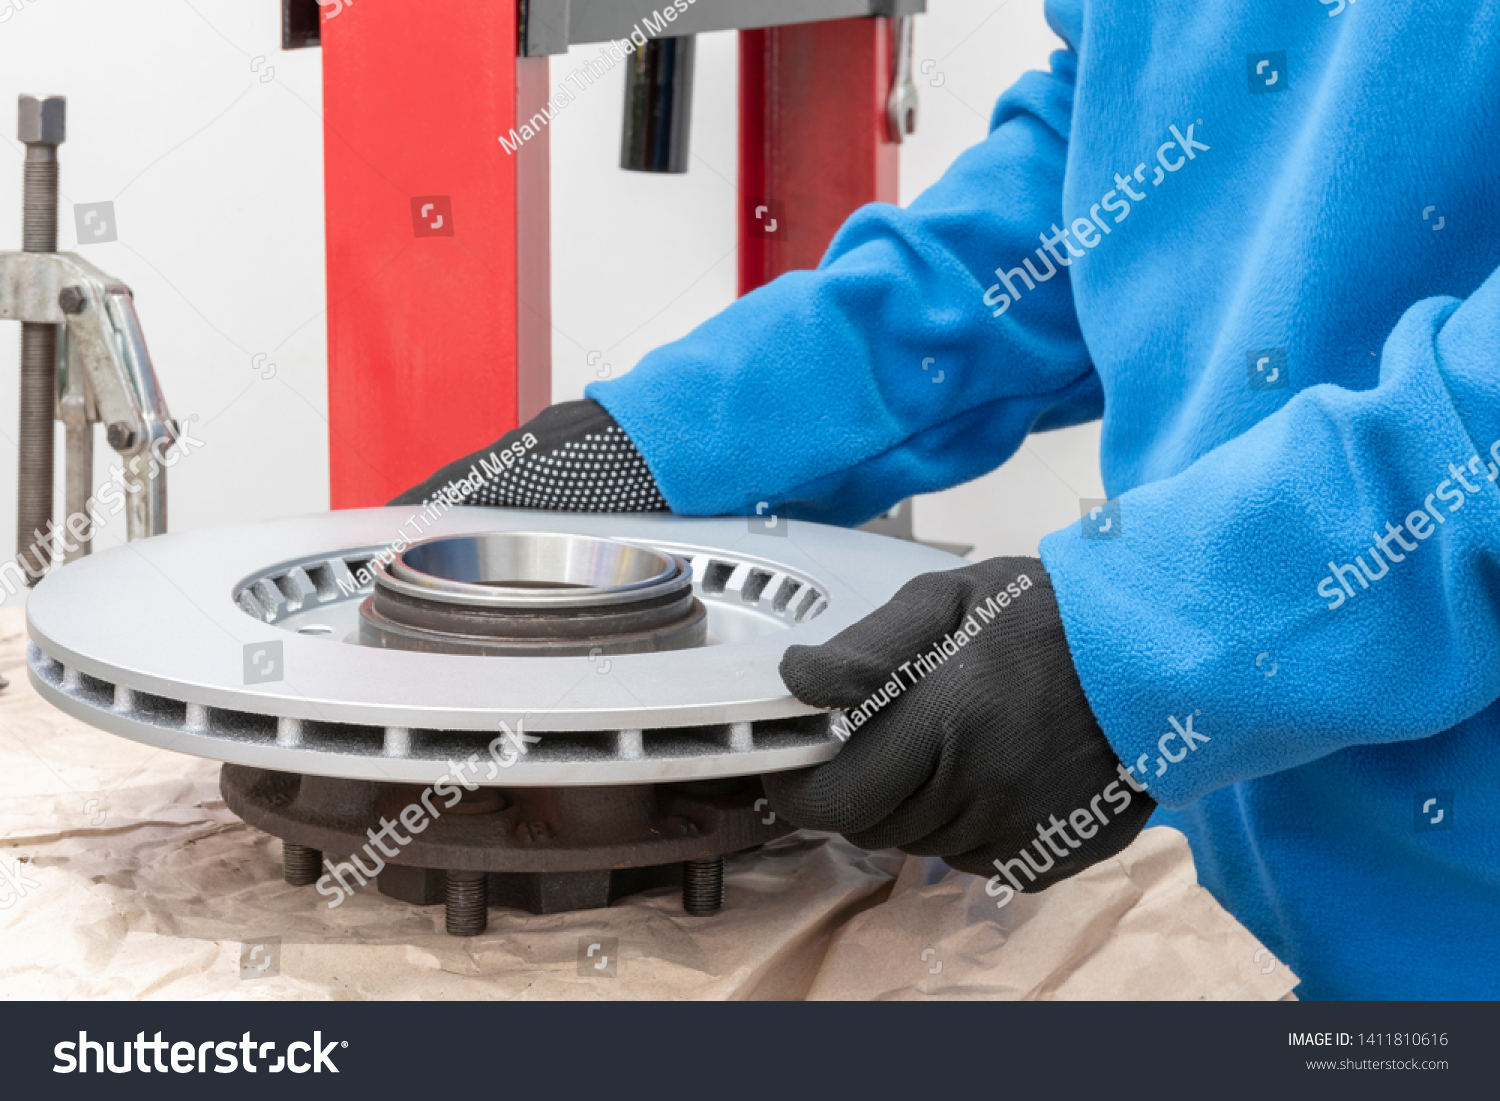 stock-photo-a-mechanic-is-placing-a-new-